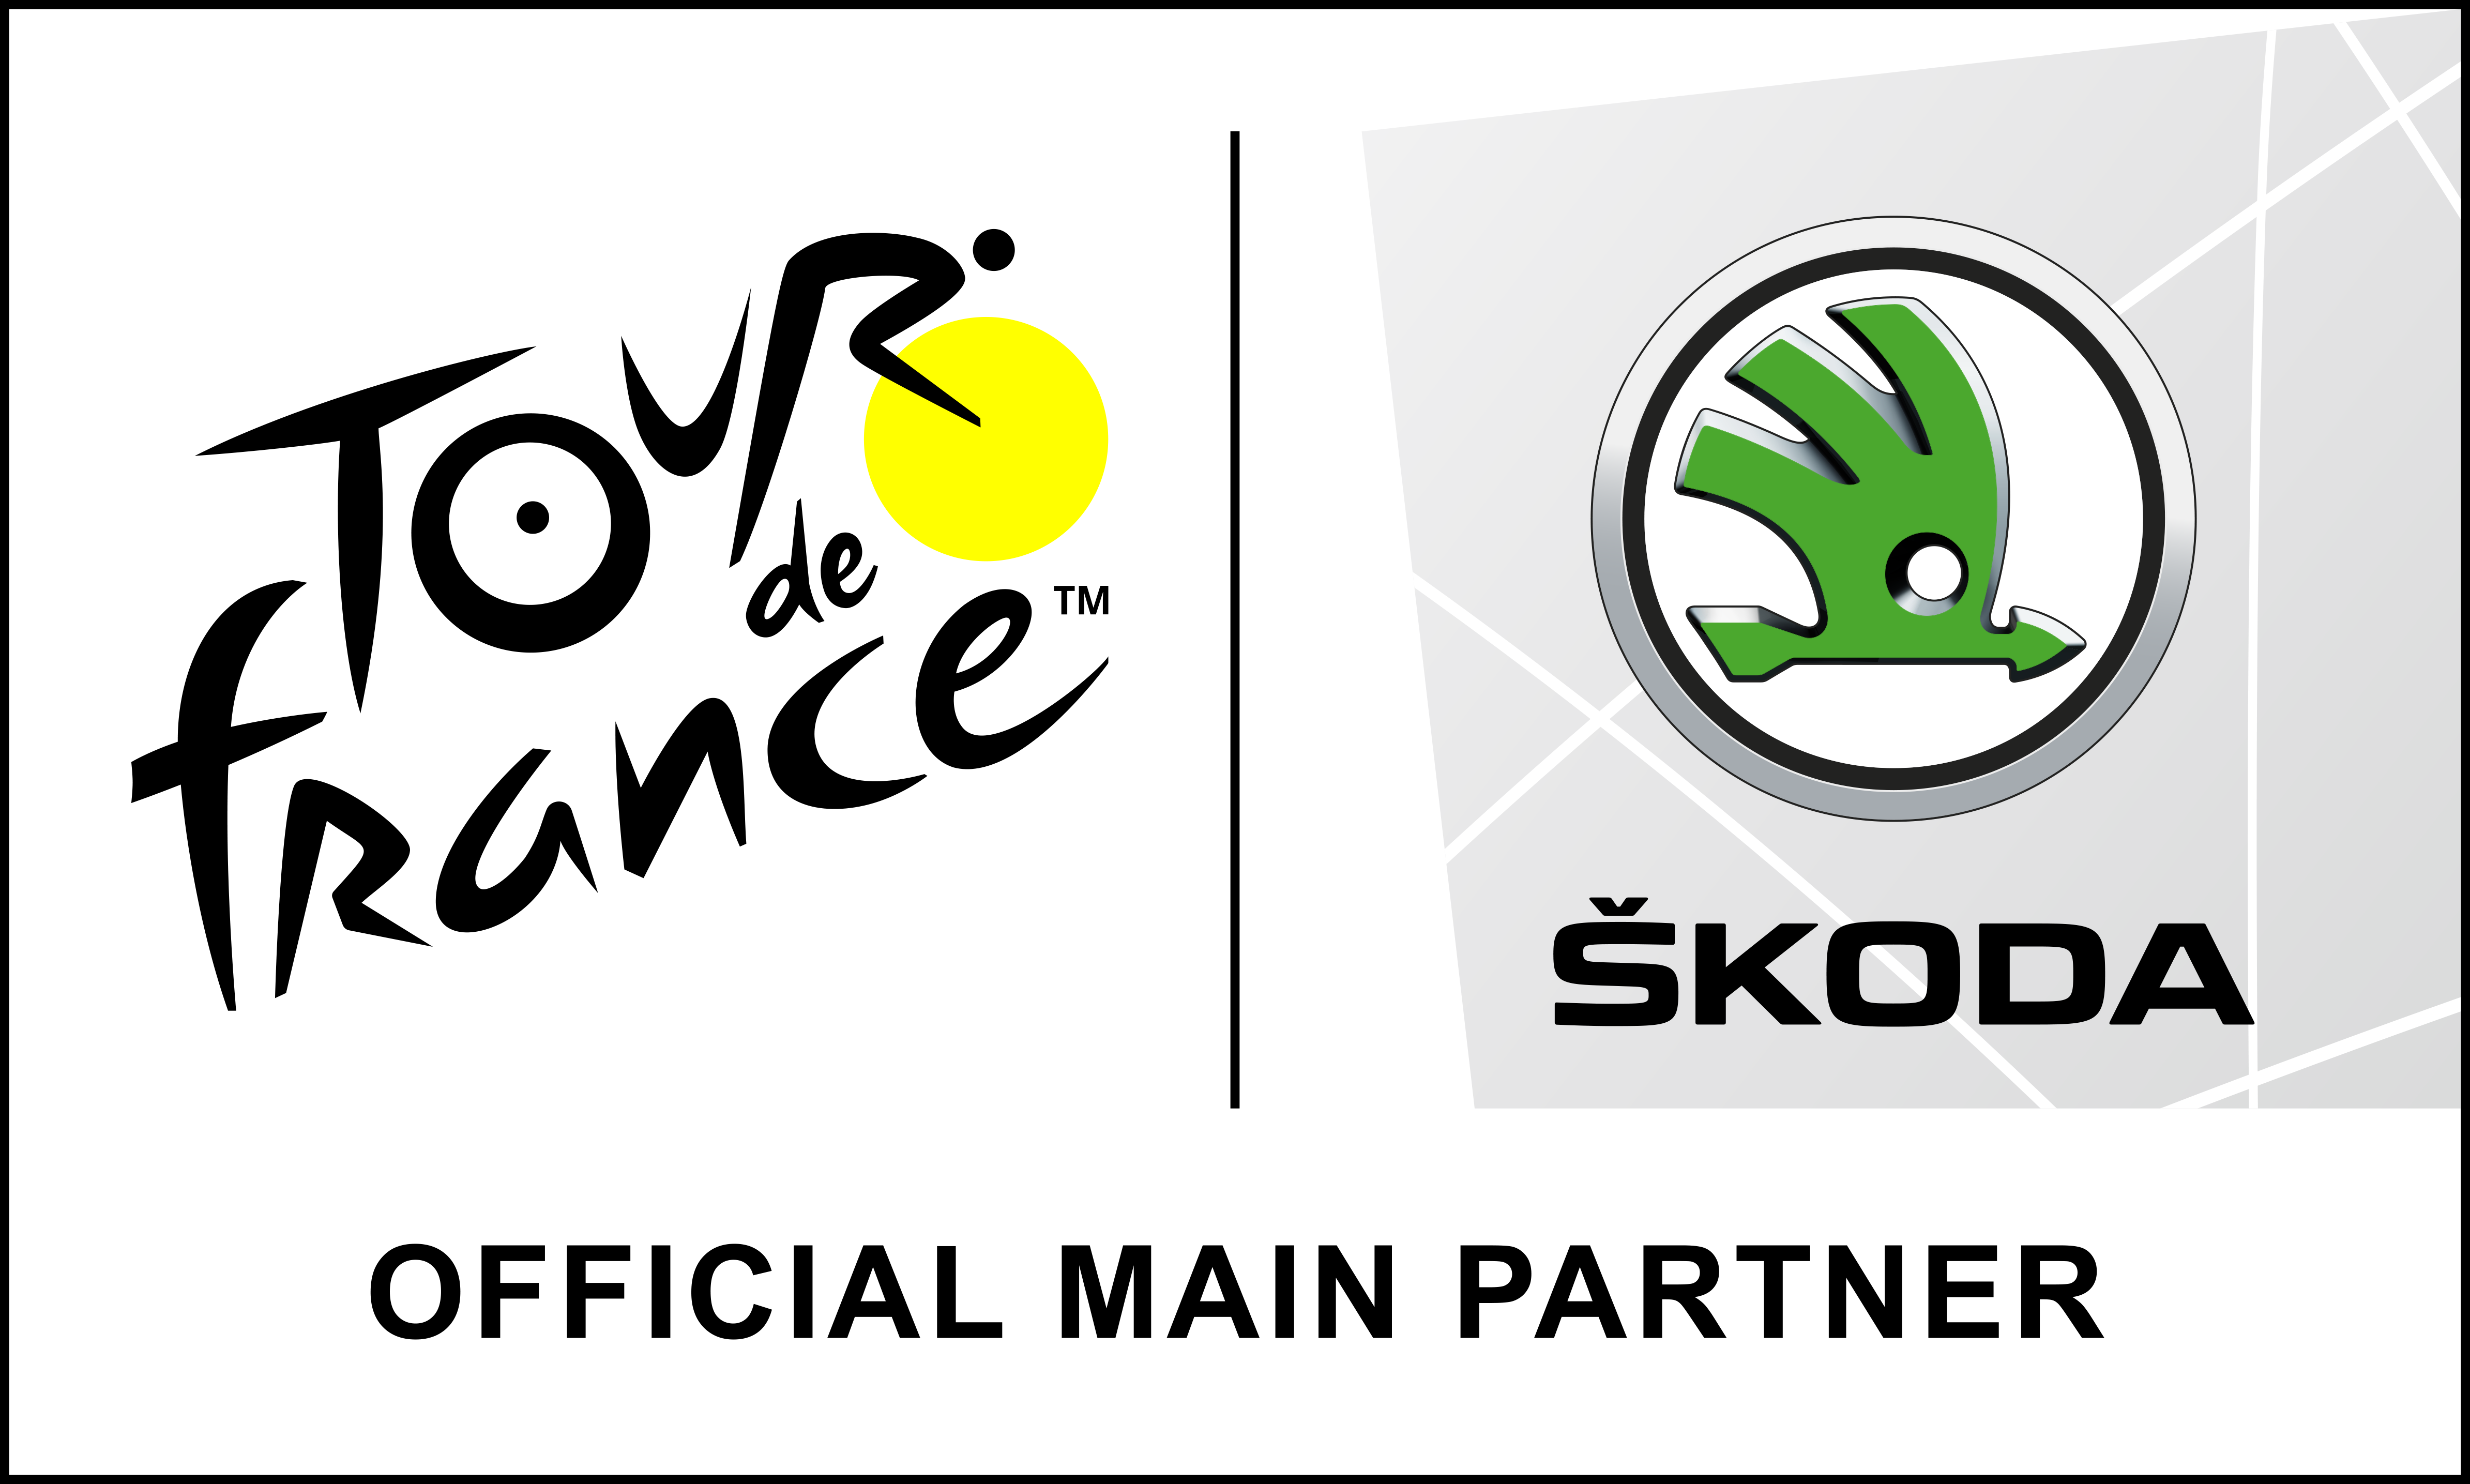 Skoda Auto Official Main Partner Of The Tour De France For 17th Time Skoda Storyboard